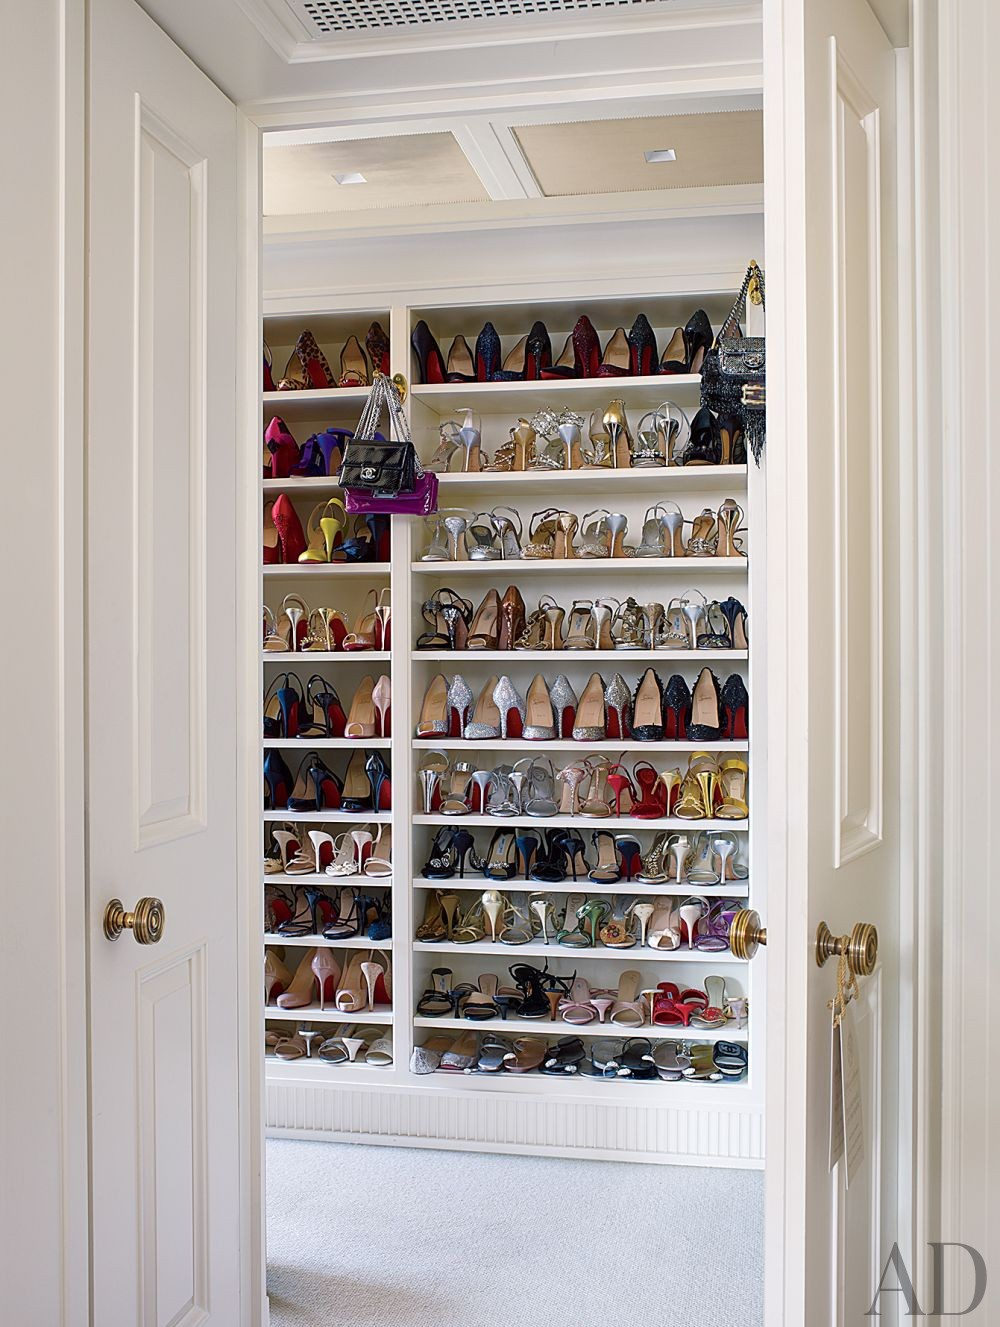 Traditional Dressing Room/Closet by Michael S. Smith Inc. and Peter Pennoyer Architects in New York, New York